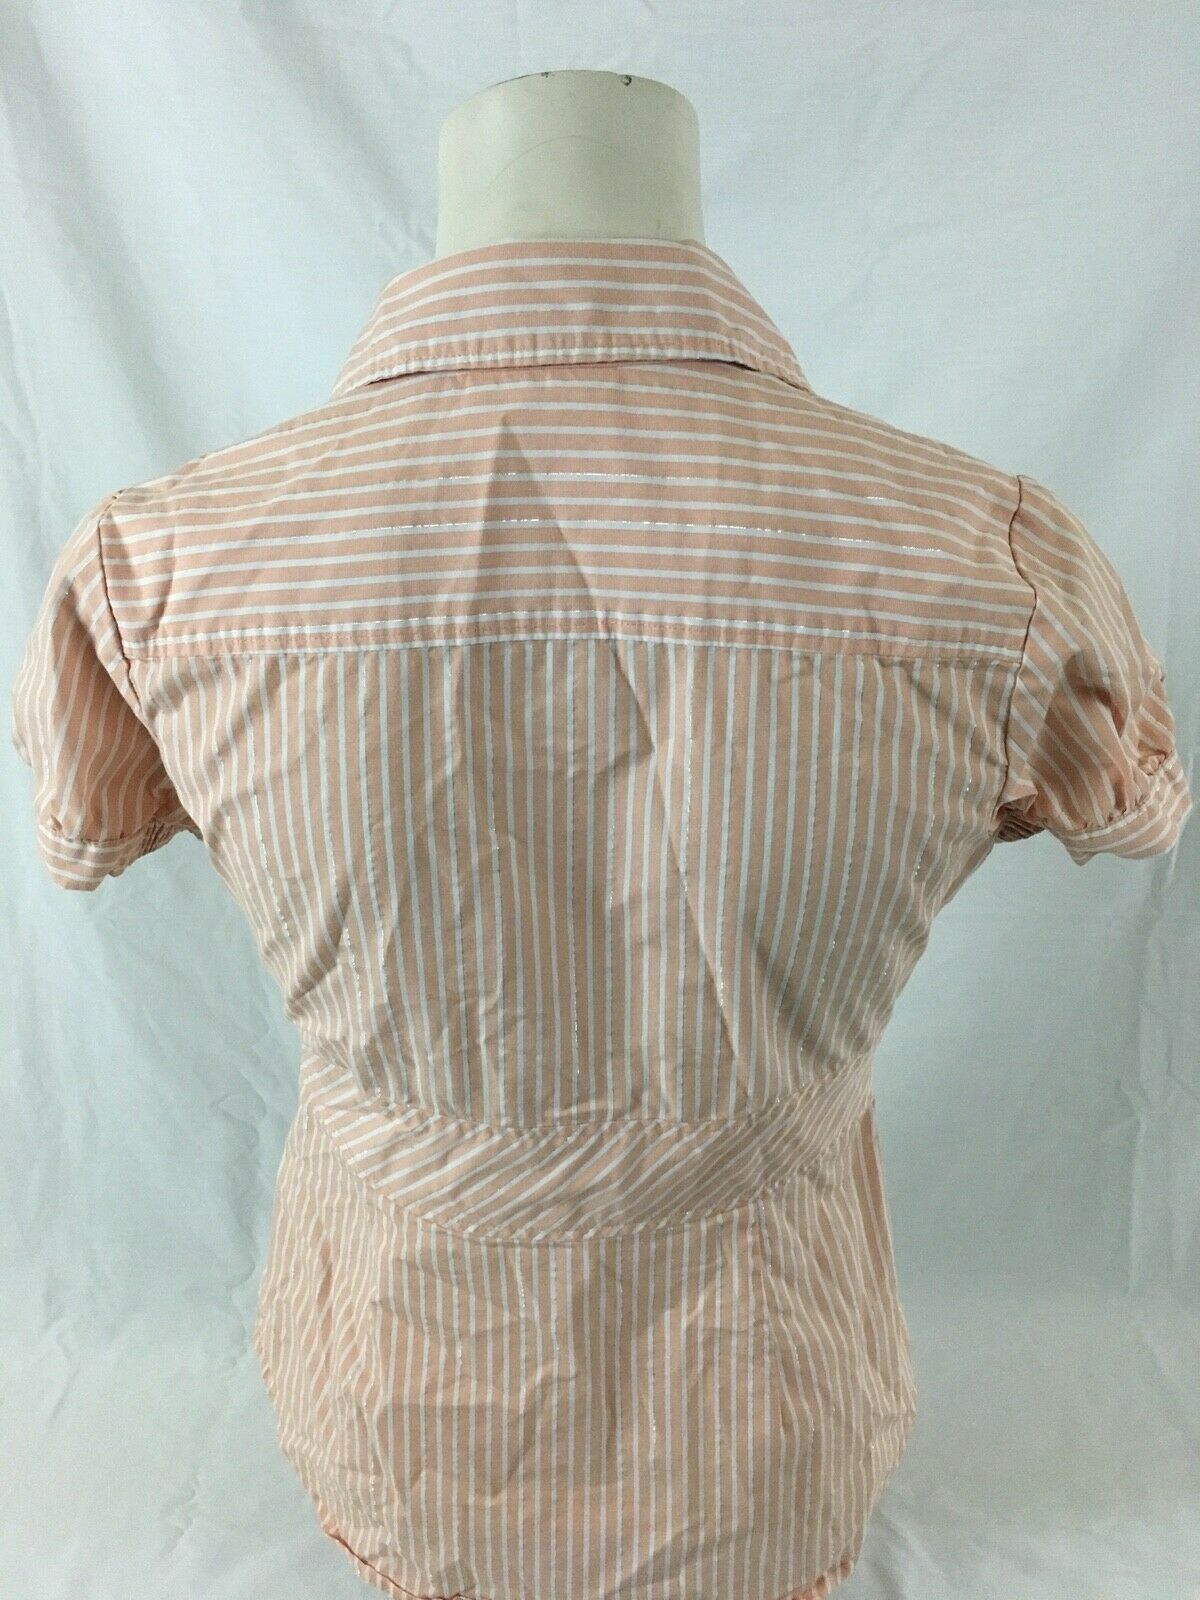 1980 vintage sophisticated buttoned blouse with embroidered collars and chest pocket by C/&A Total white